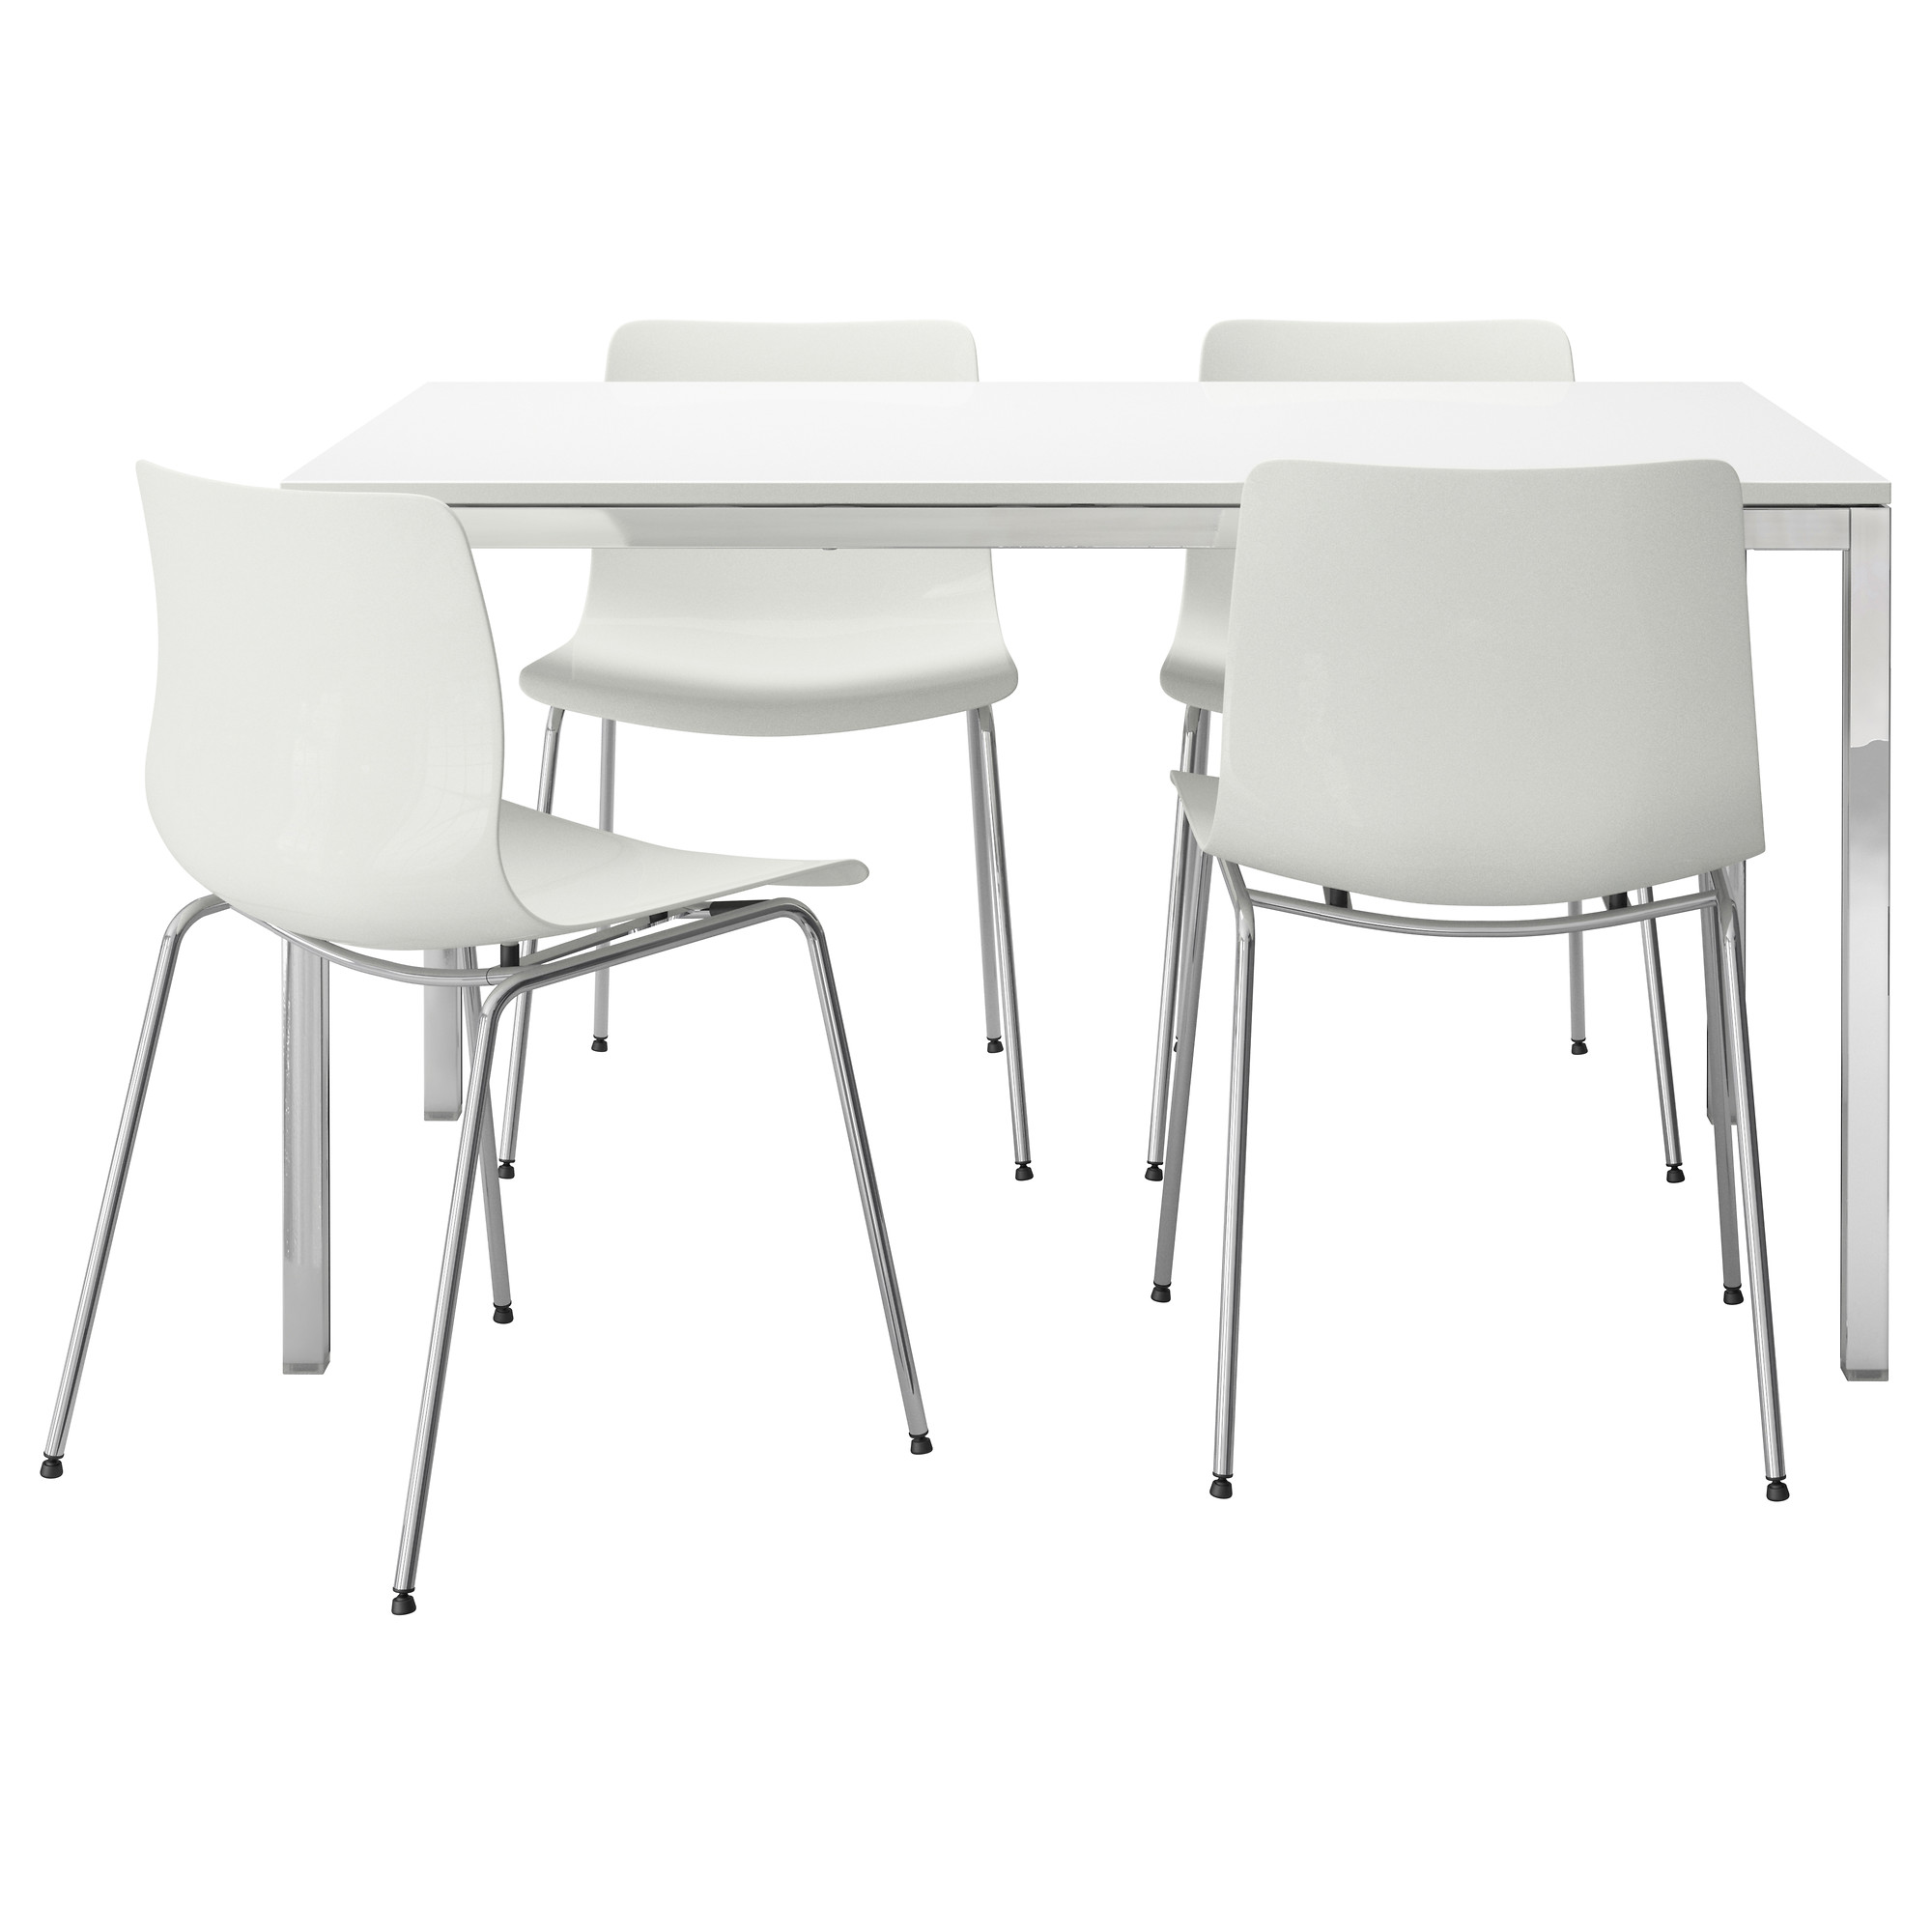 White Round Dining Table 4 Legs ikea white round dining table and chairs - starrkingschool